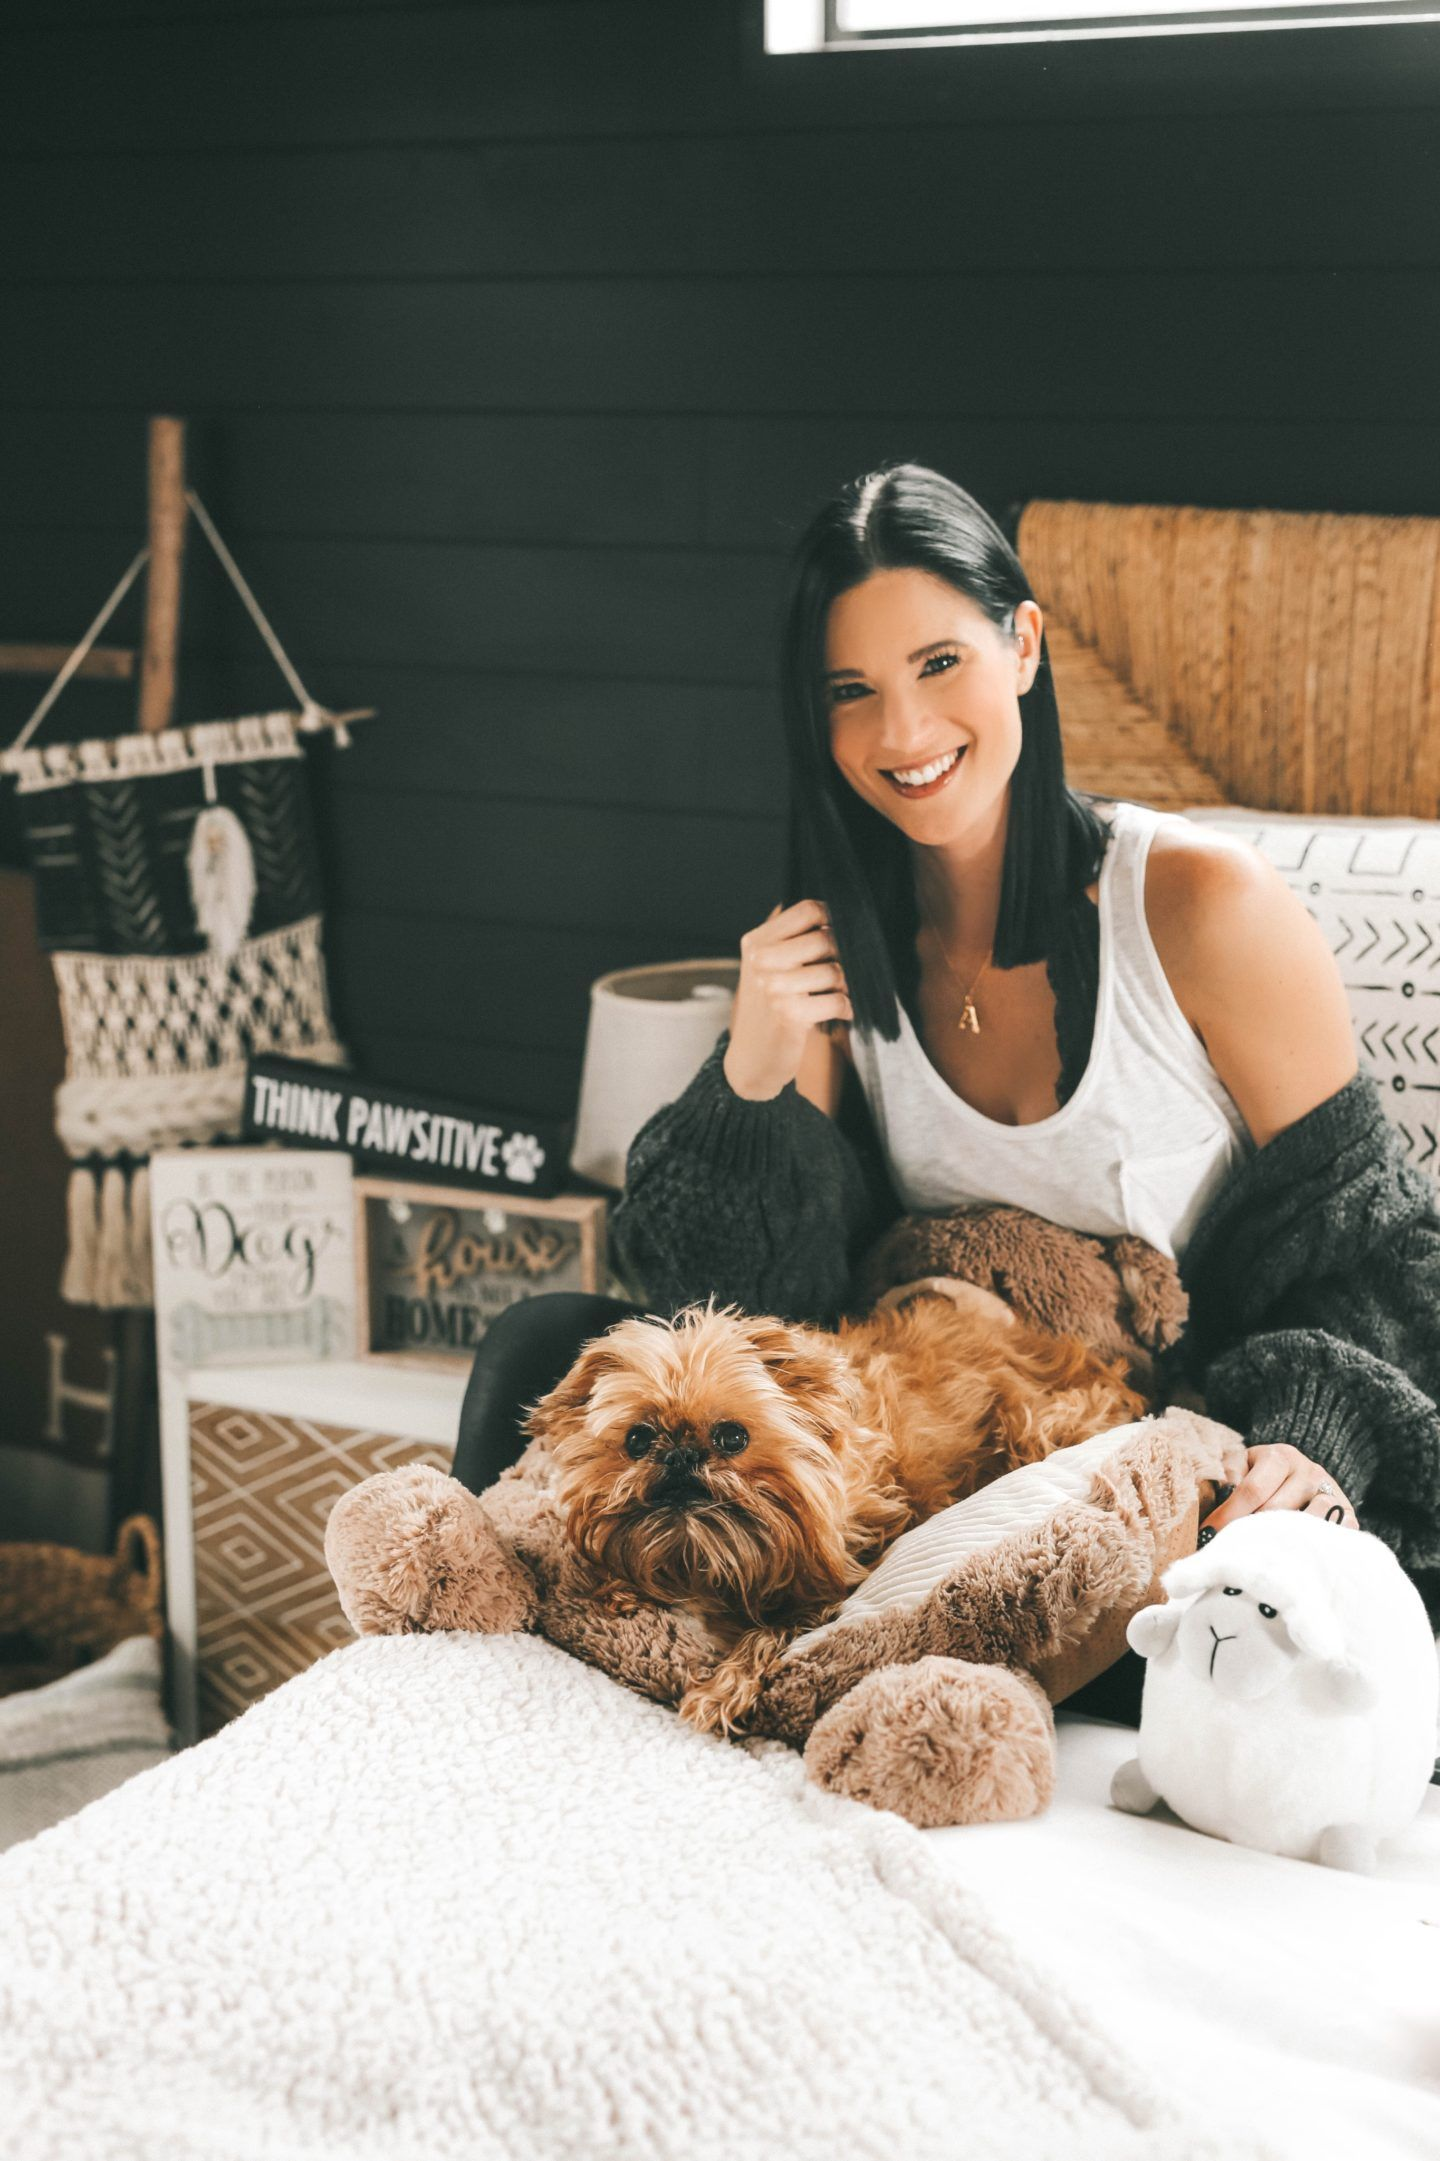 Pamper Your Pet On A Budget In 2020 Your Pet Pets Pet Hacks